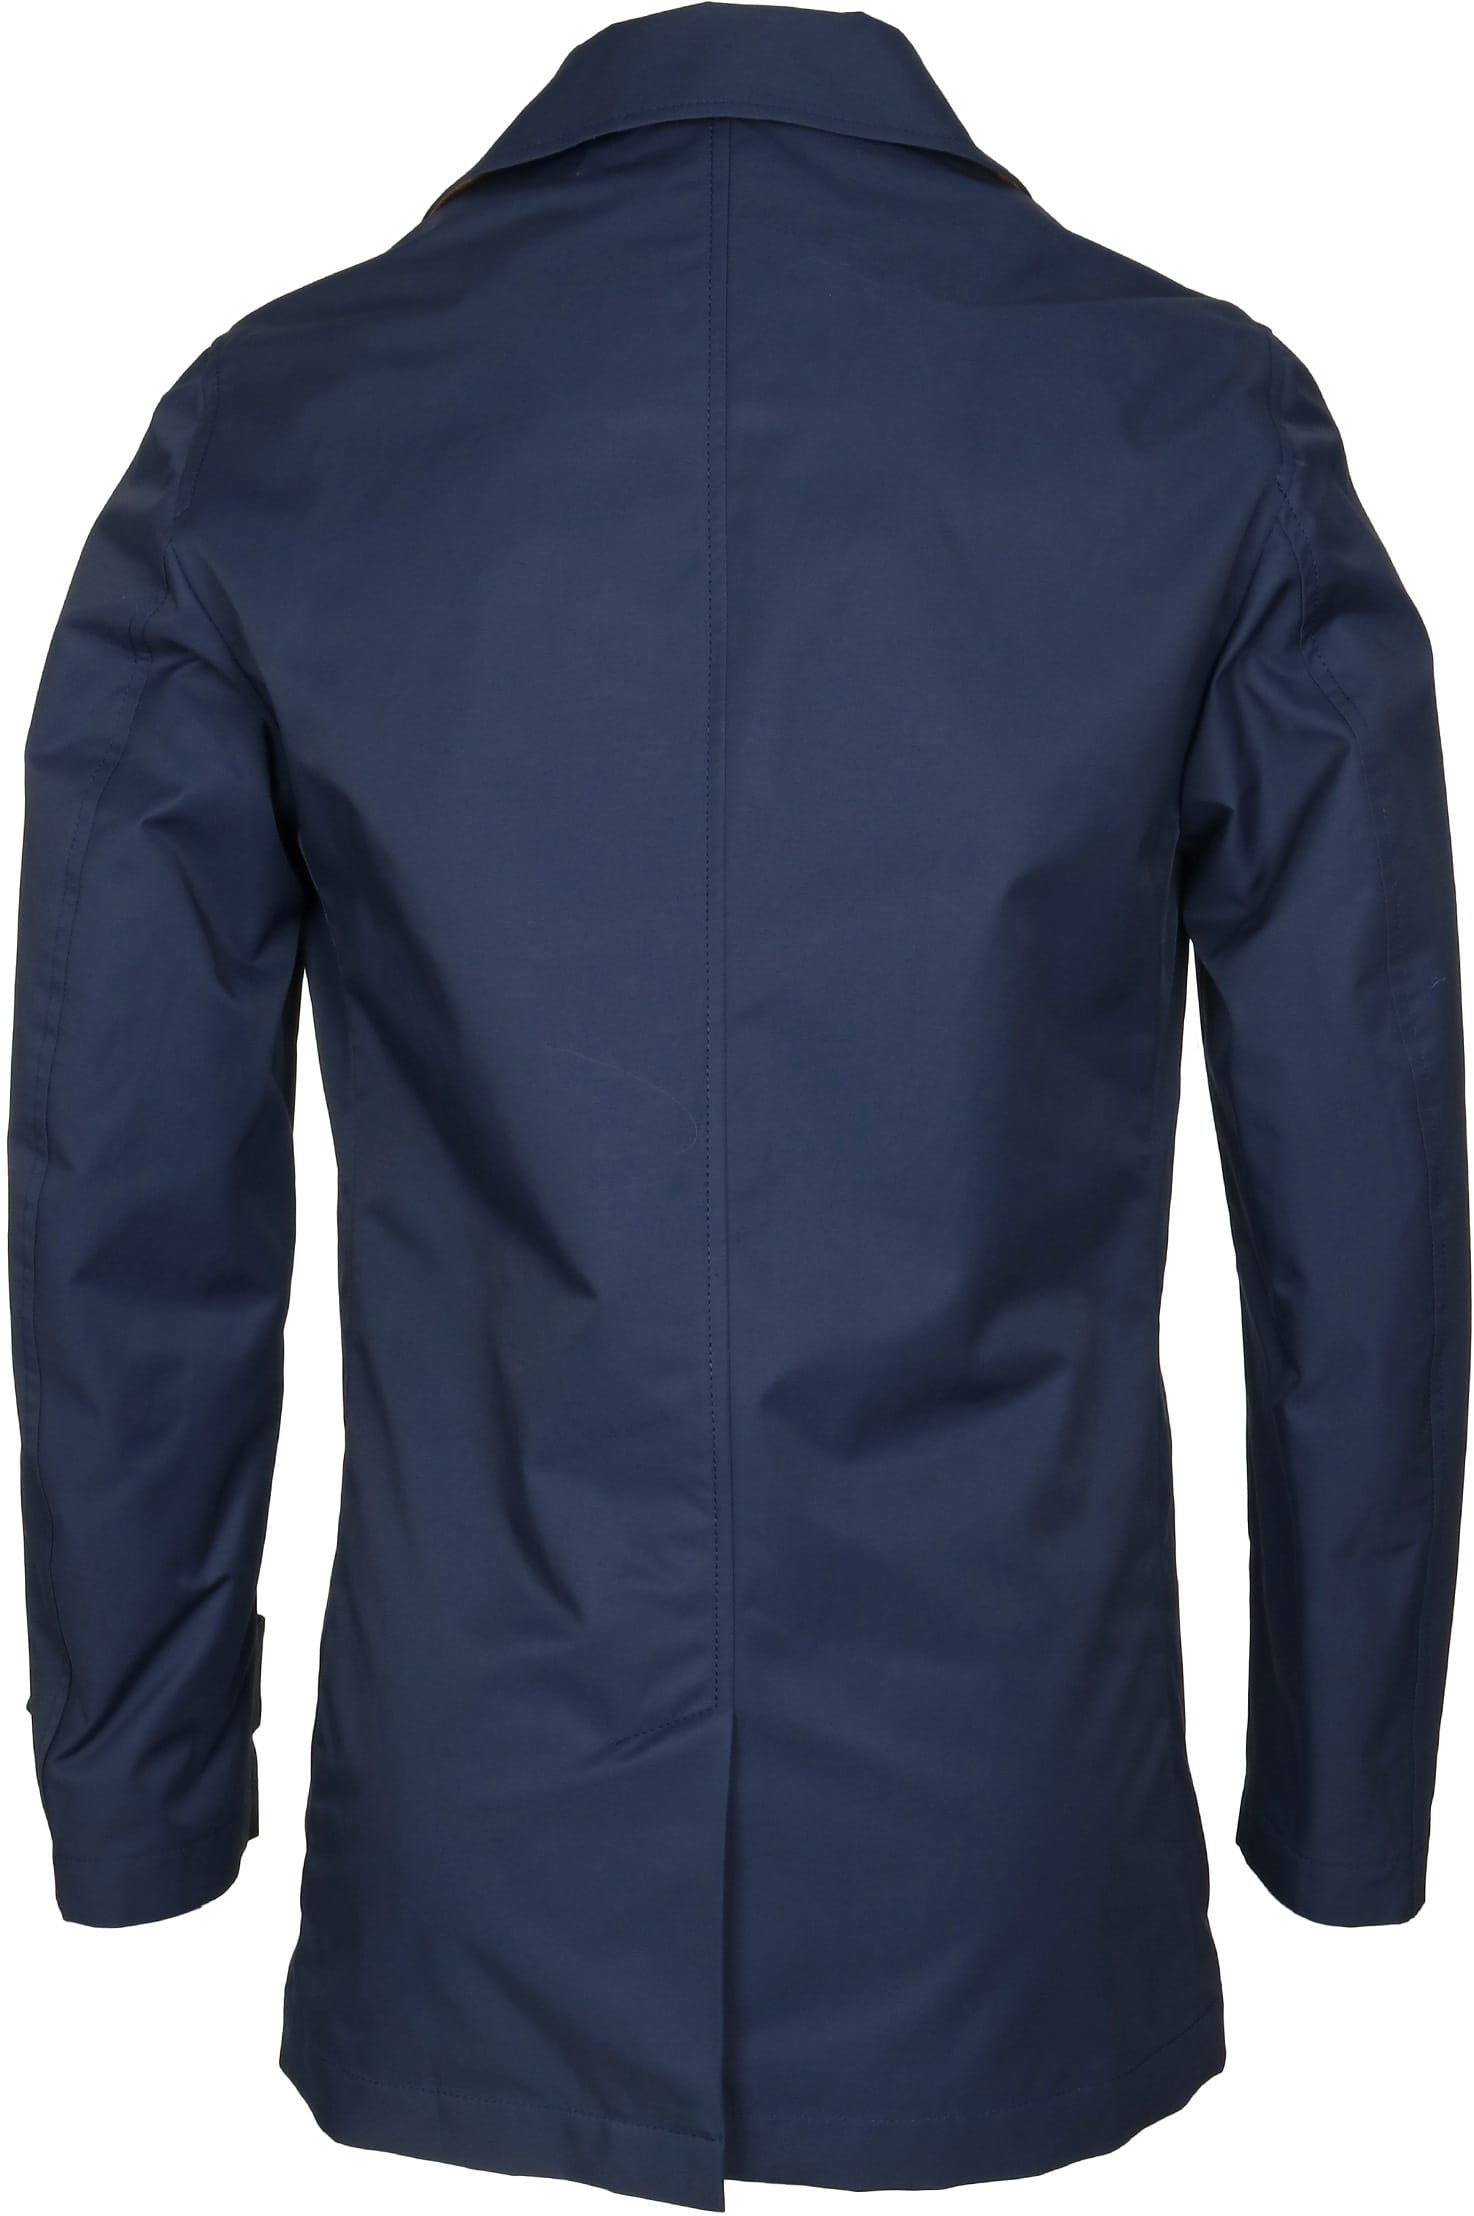 Suitable Coat Rosewood Navy foto 5